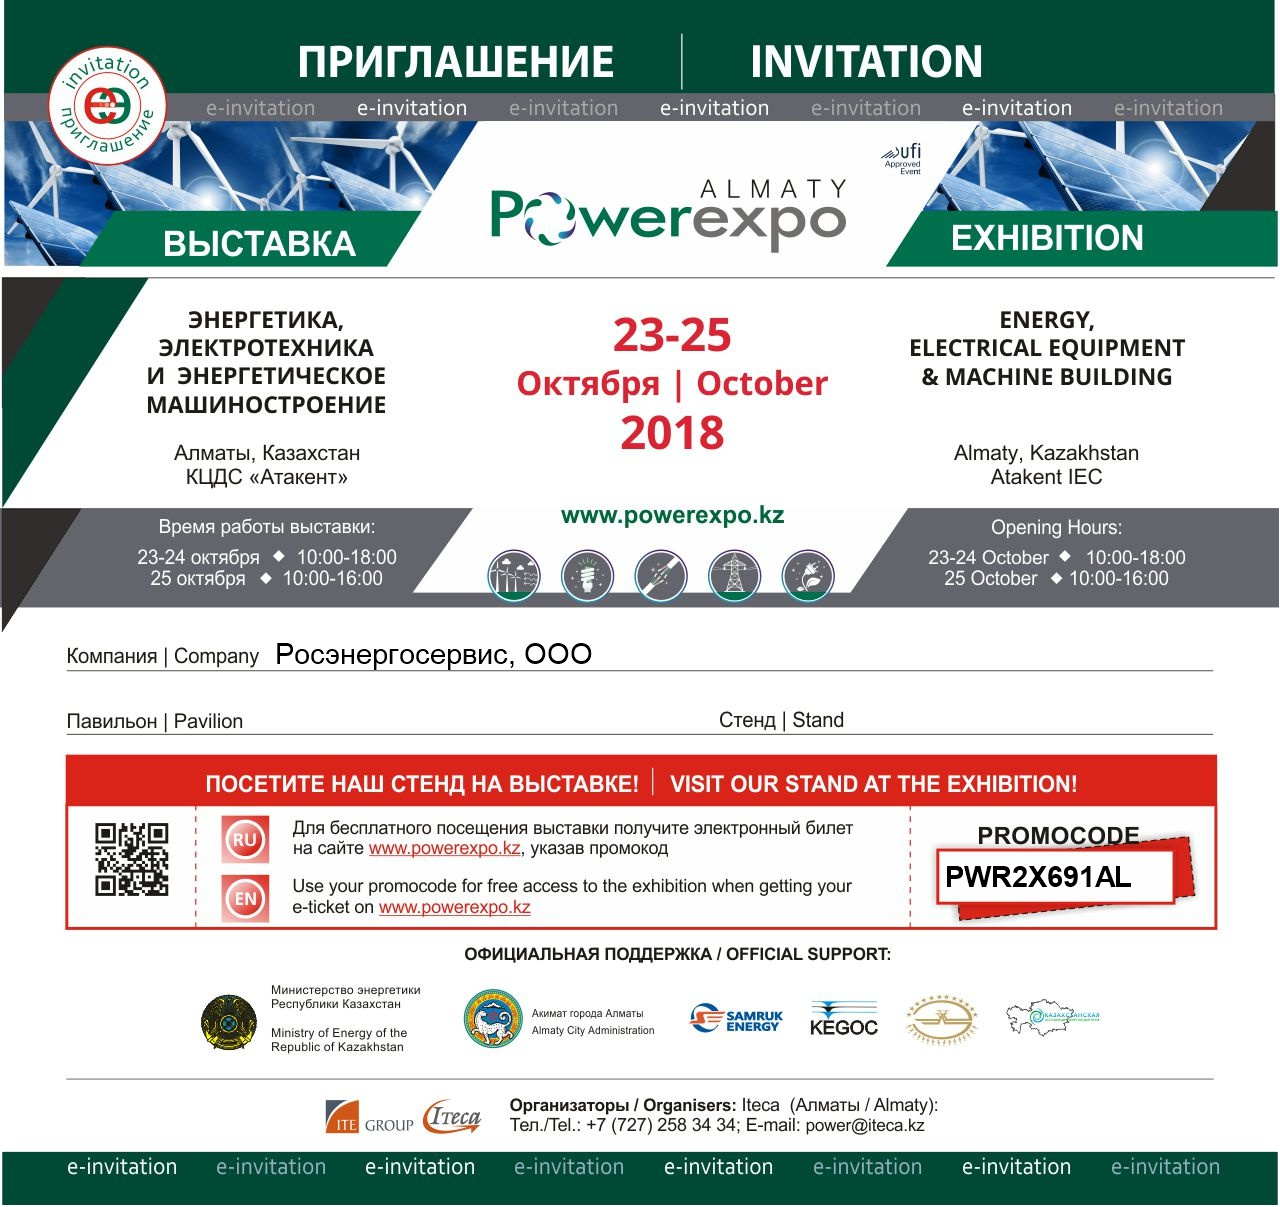 invite-powerkz2018